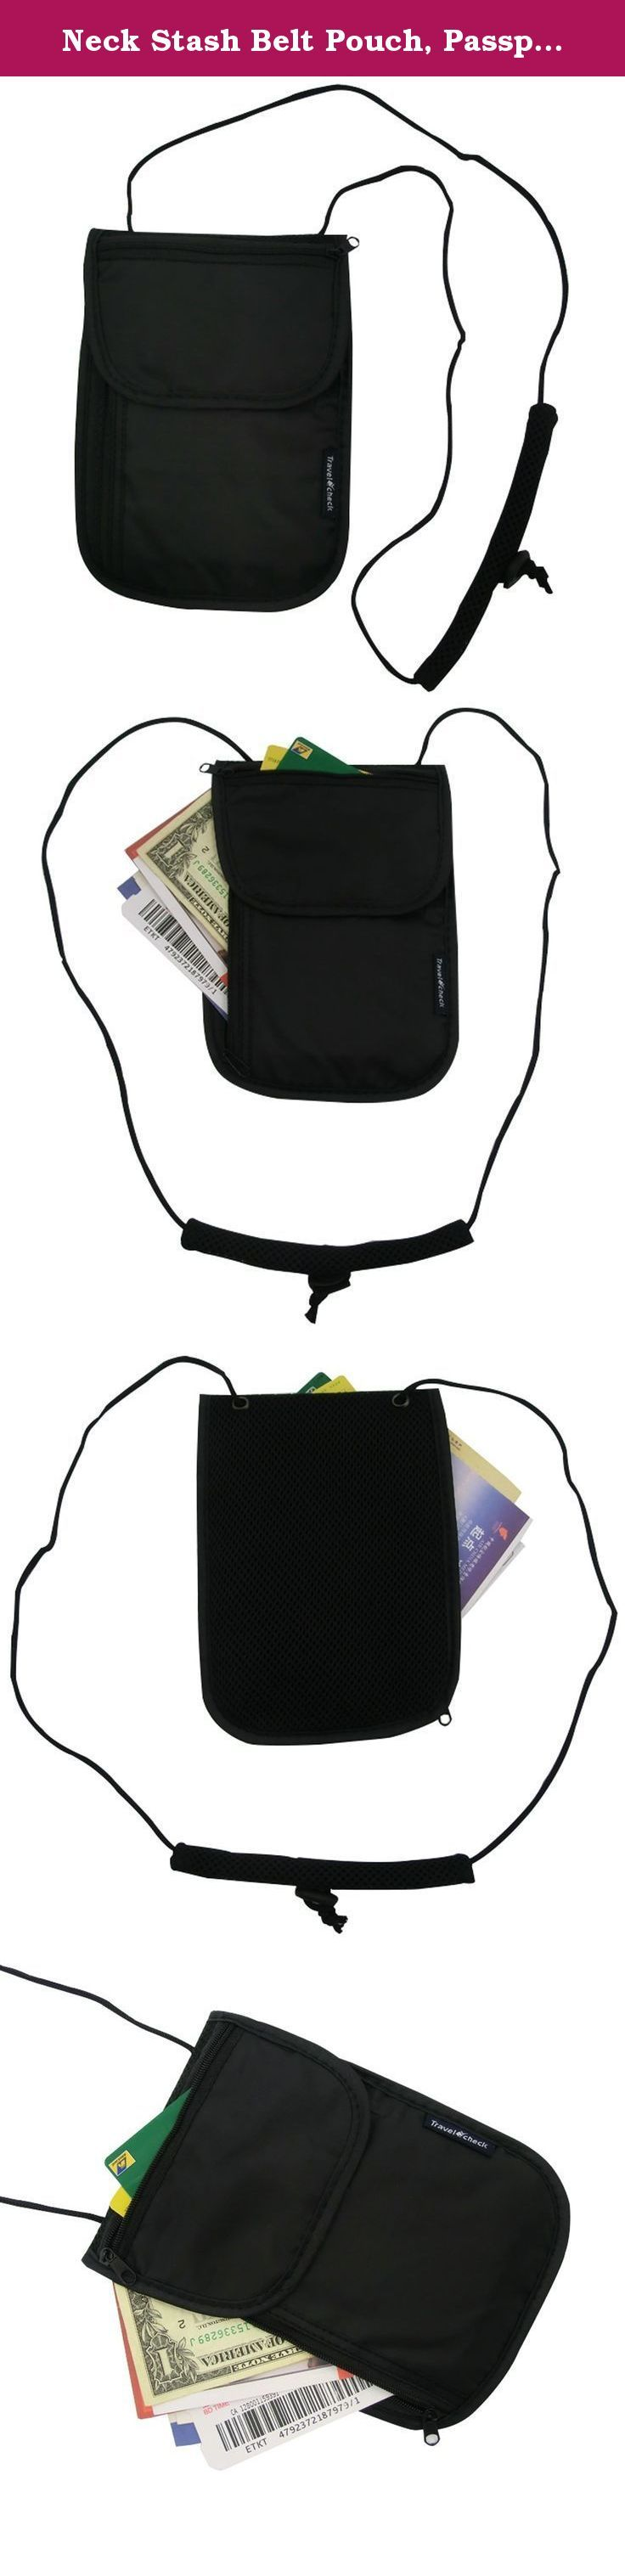 Neck Stash Belt Pouch, Passport Holder RFID Safety , Hidden Travel Wallet , Travel Zipper Pockets for Passports, Documents, Credit Cards & Cash + E-Station Car Glasses Visor Ticket Clip Holder (Black). Product Description Travel in style and keep all of your travel documents safe, organized and secure in the passport cover. This simple passport bag is the best choice for travel. Measures: 20cm x 14cm / 7.87 x 5.51 inches Weight: 30.8g/1.08oz Package Included: 1 x Possport Holder 1 x...